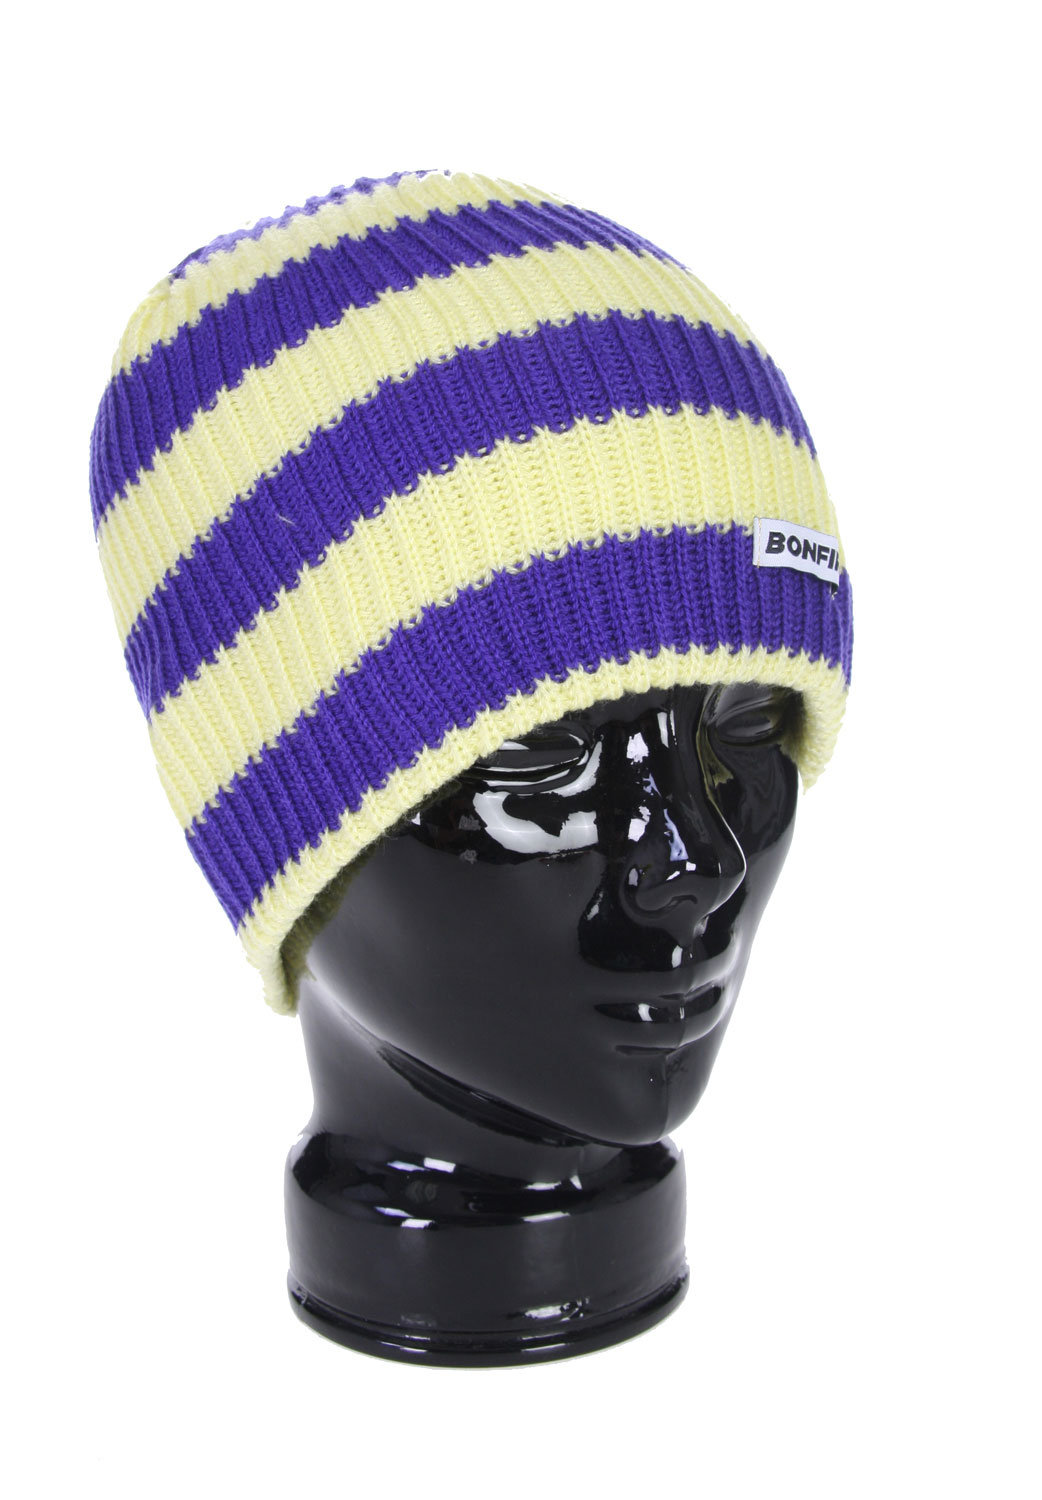 If you have been looking for that beanie that guarantees to keep you warm while showing off your style and won't cause you to break the bank to but it, then look no further because the Bonfire Stripe Beanie is exactly what you have been looking for. This beanie is tight fitting so you can wear it comfortably underneath a helmet or all by itself. The style and comfort that if offered from the Bonfire Stripe Beanie makes it a great addition to any collection.Key Features of The Bonfire Stripe Beanie: 100% Acrylic - $16.95